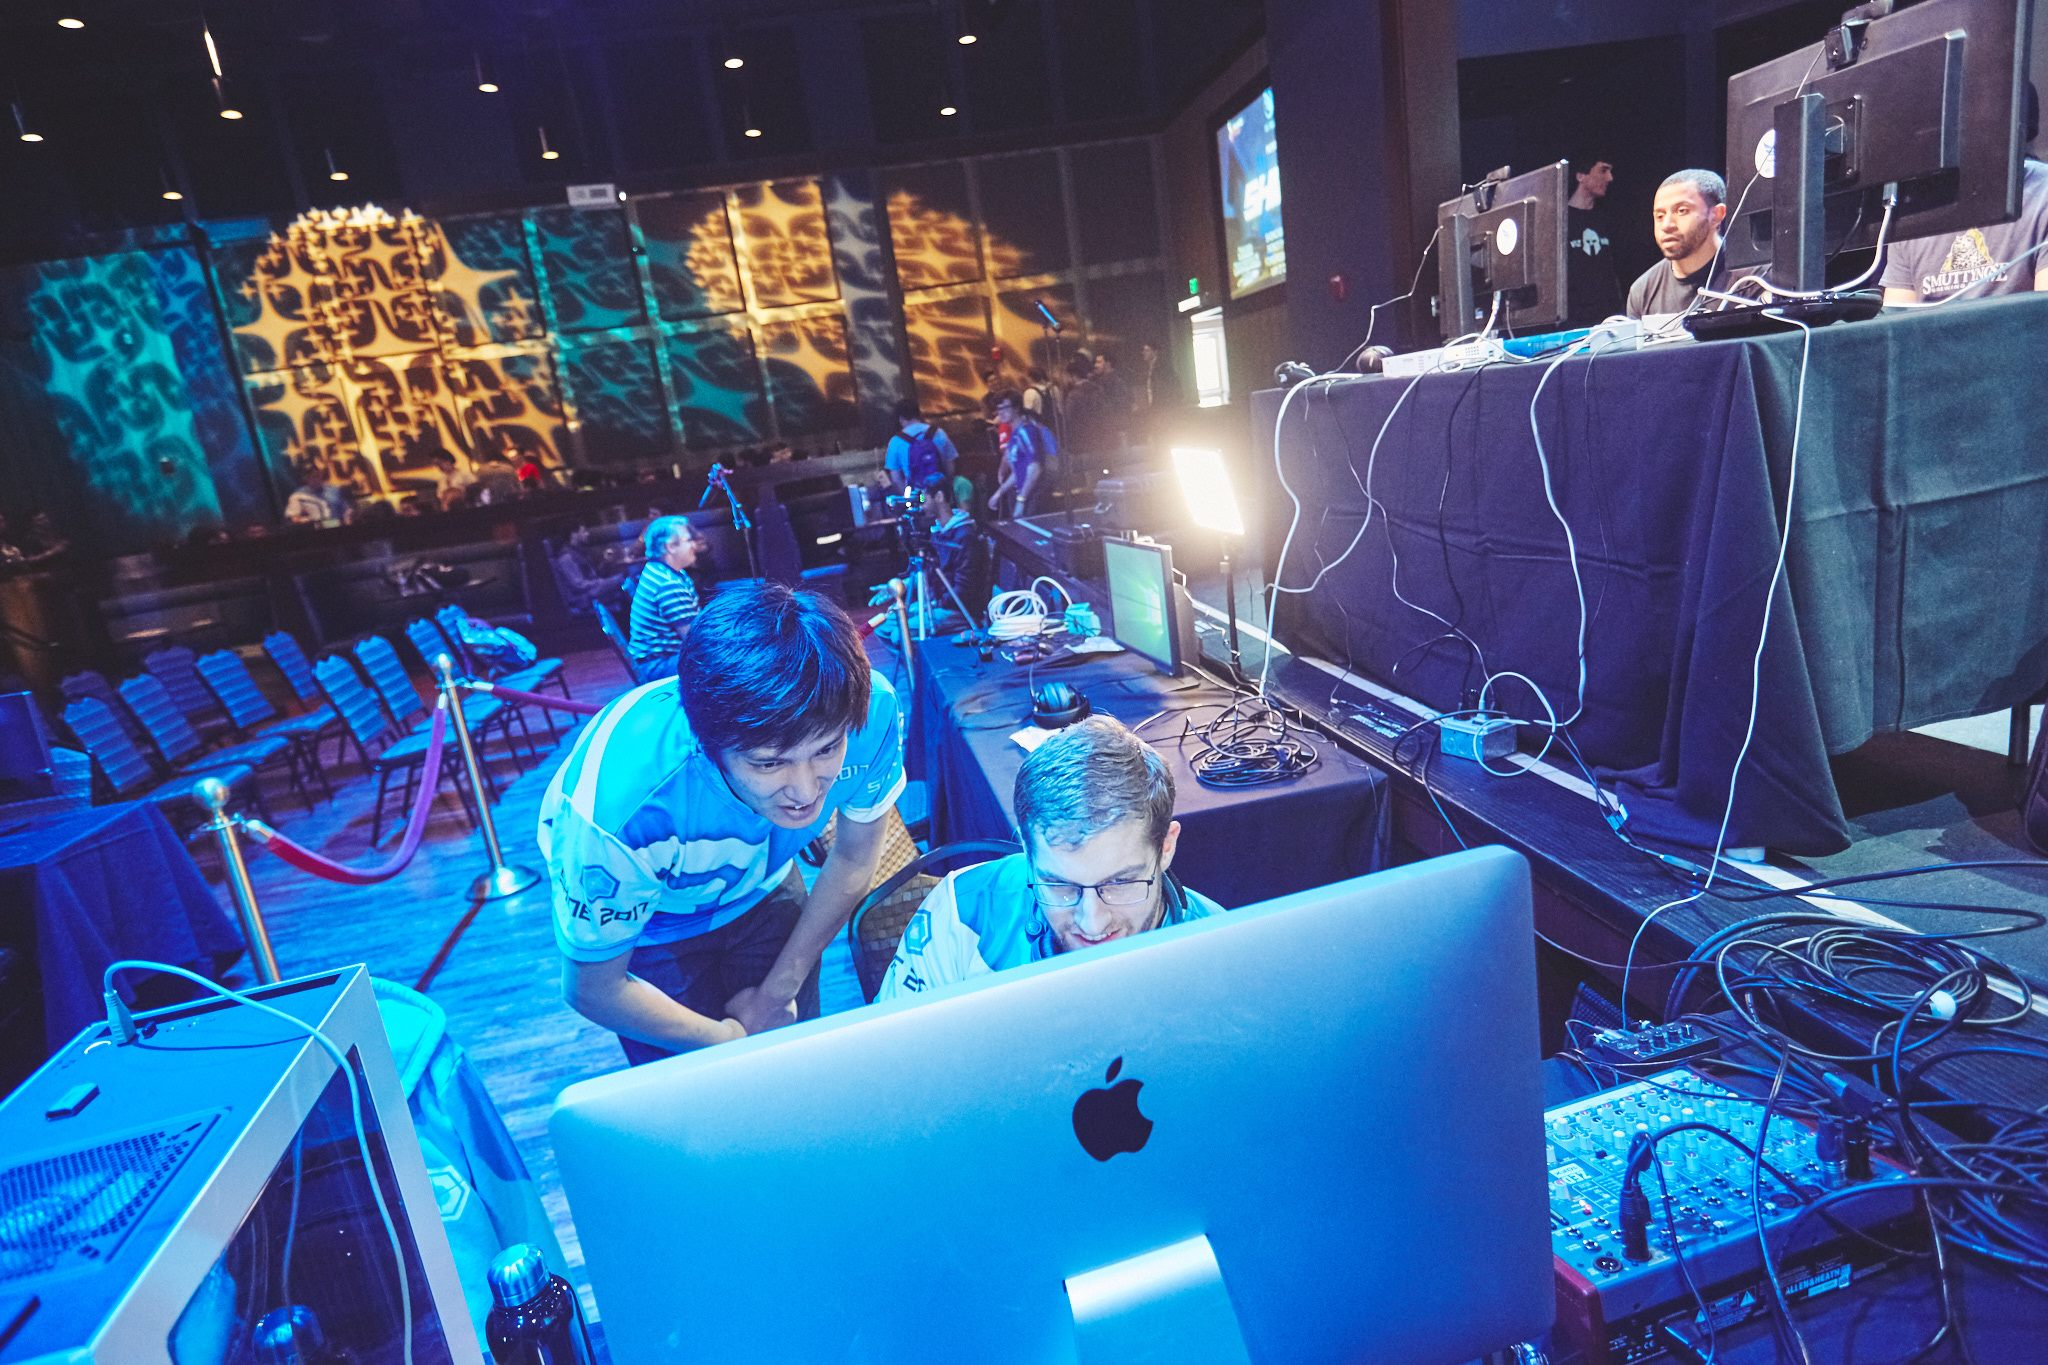 Management - Big Blue is Boston's only Esports event management and operator with its own Flagship event that brings in thousands of competitors every year. We have partnered and worked with many top Esports brands and services to bring to life exciting events no matter the budget, big or small.